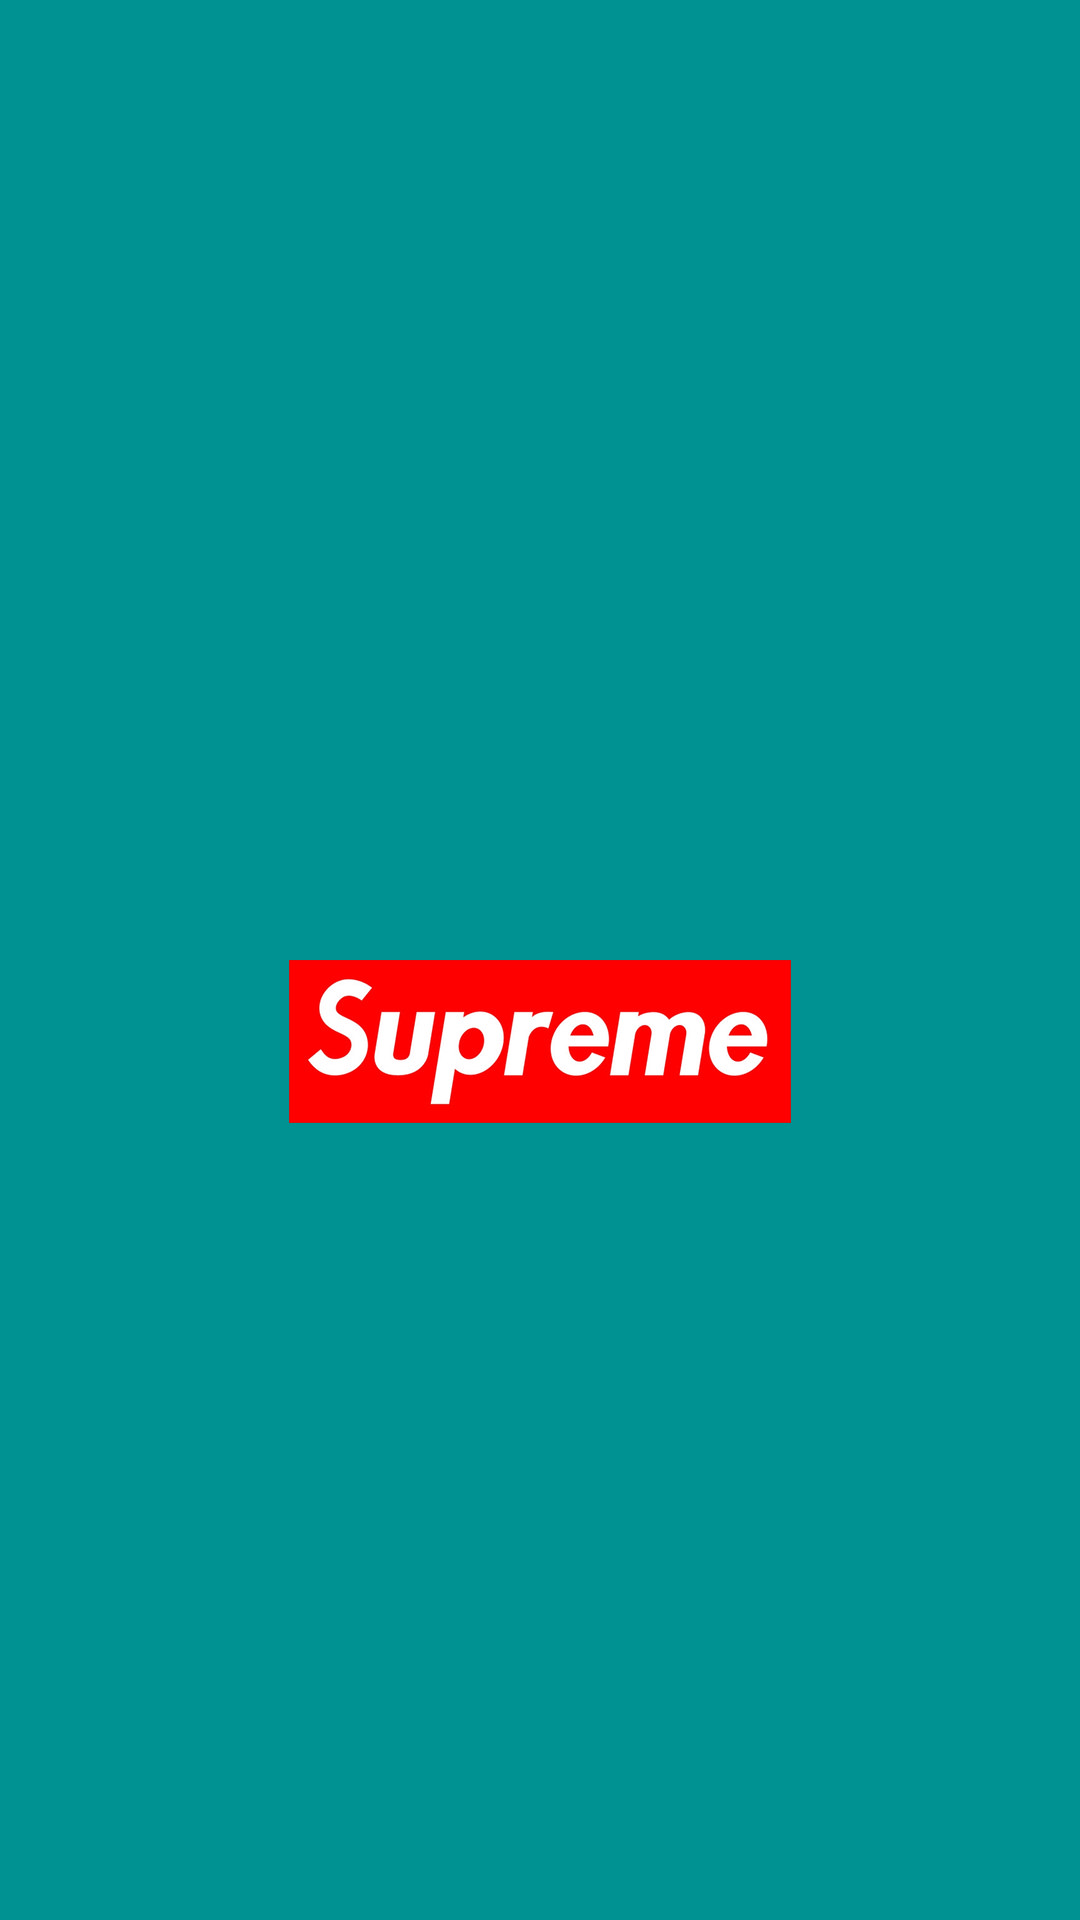 supreme06 - 23 Supreme HQ Smartphone Wallpaper Collection